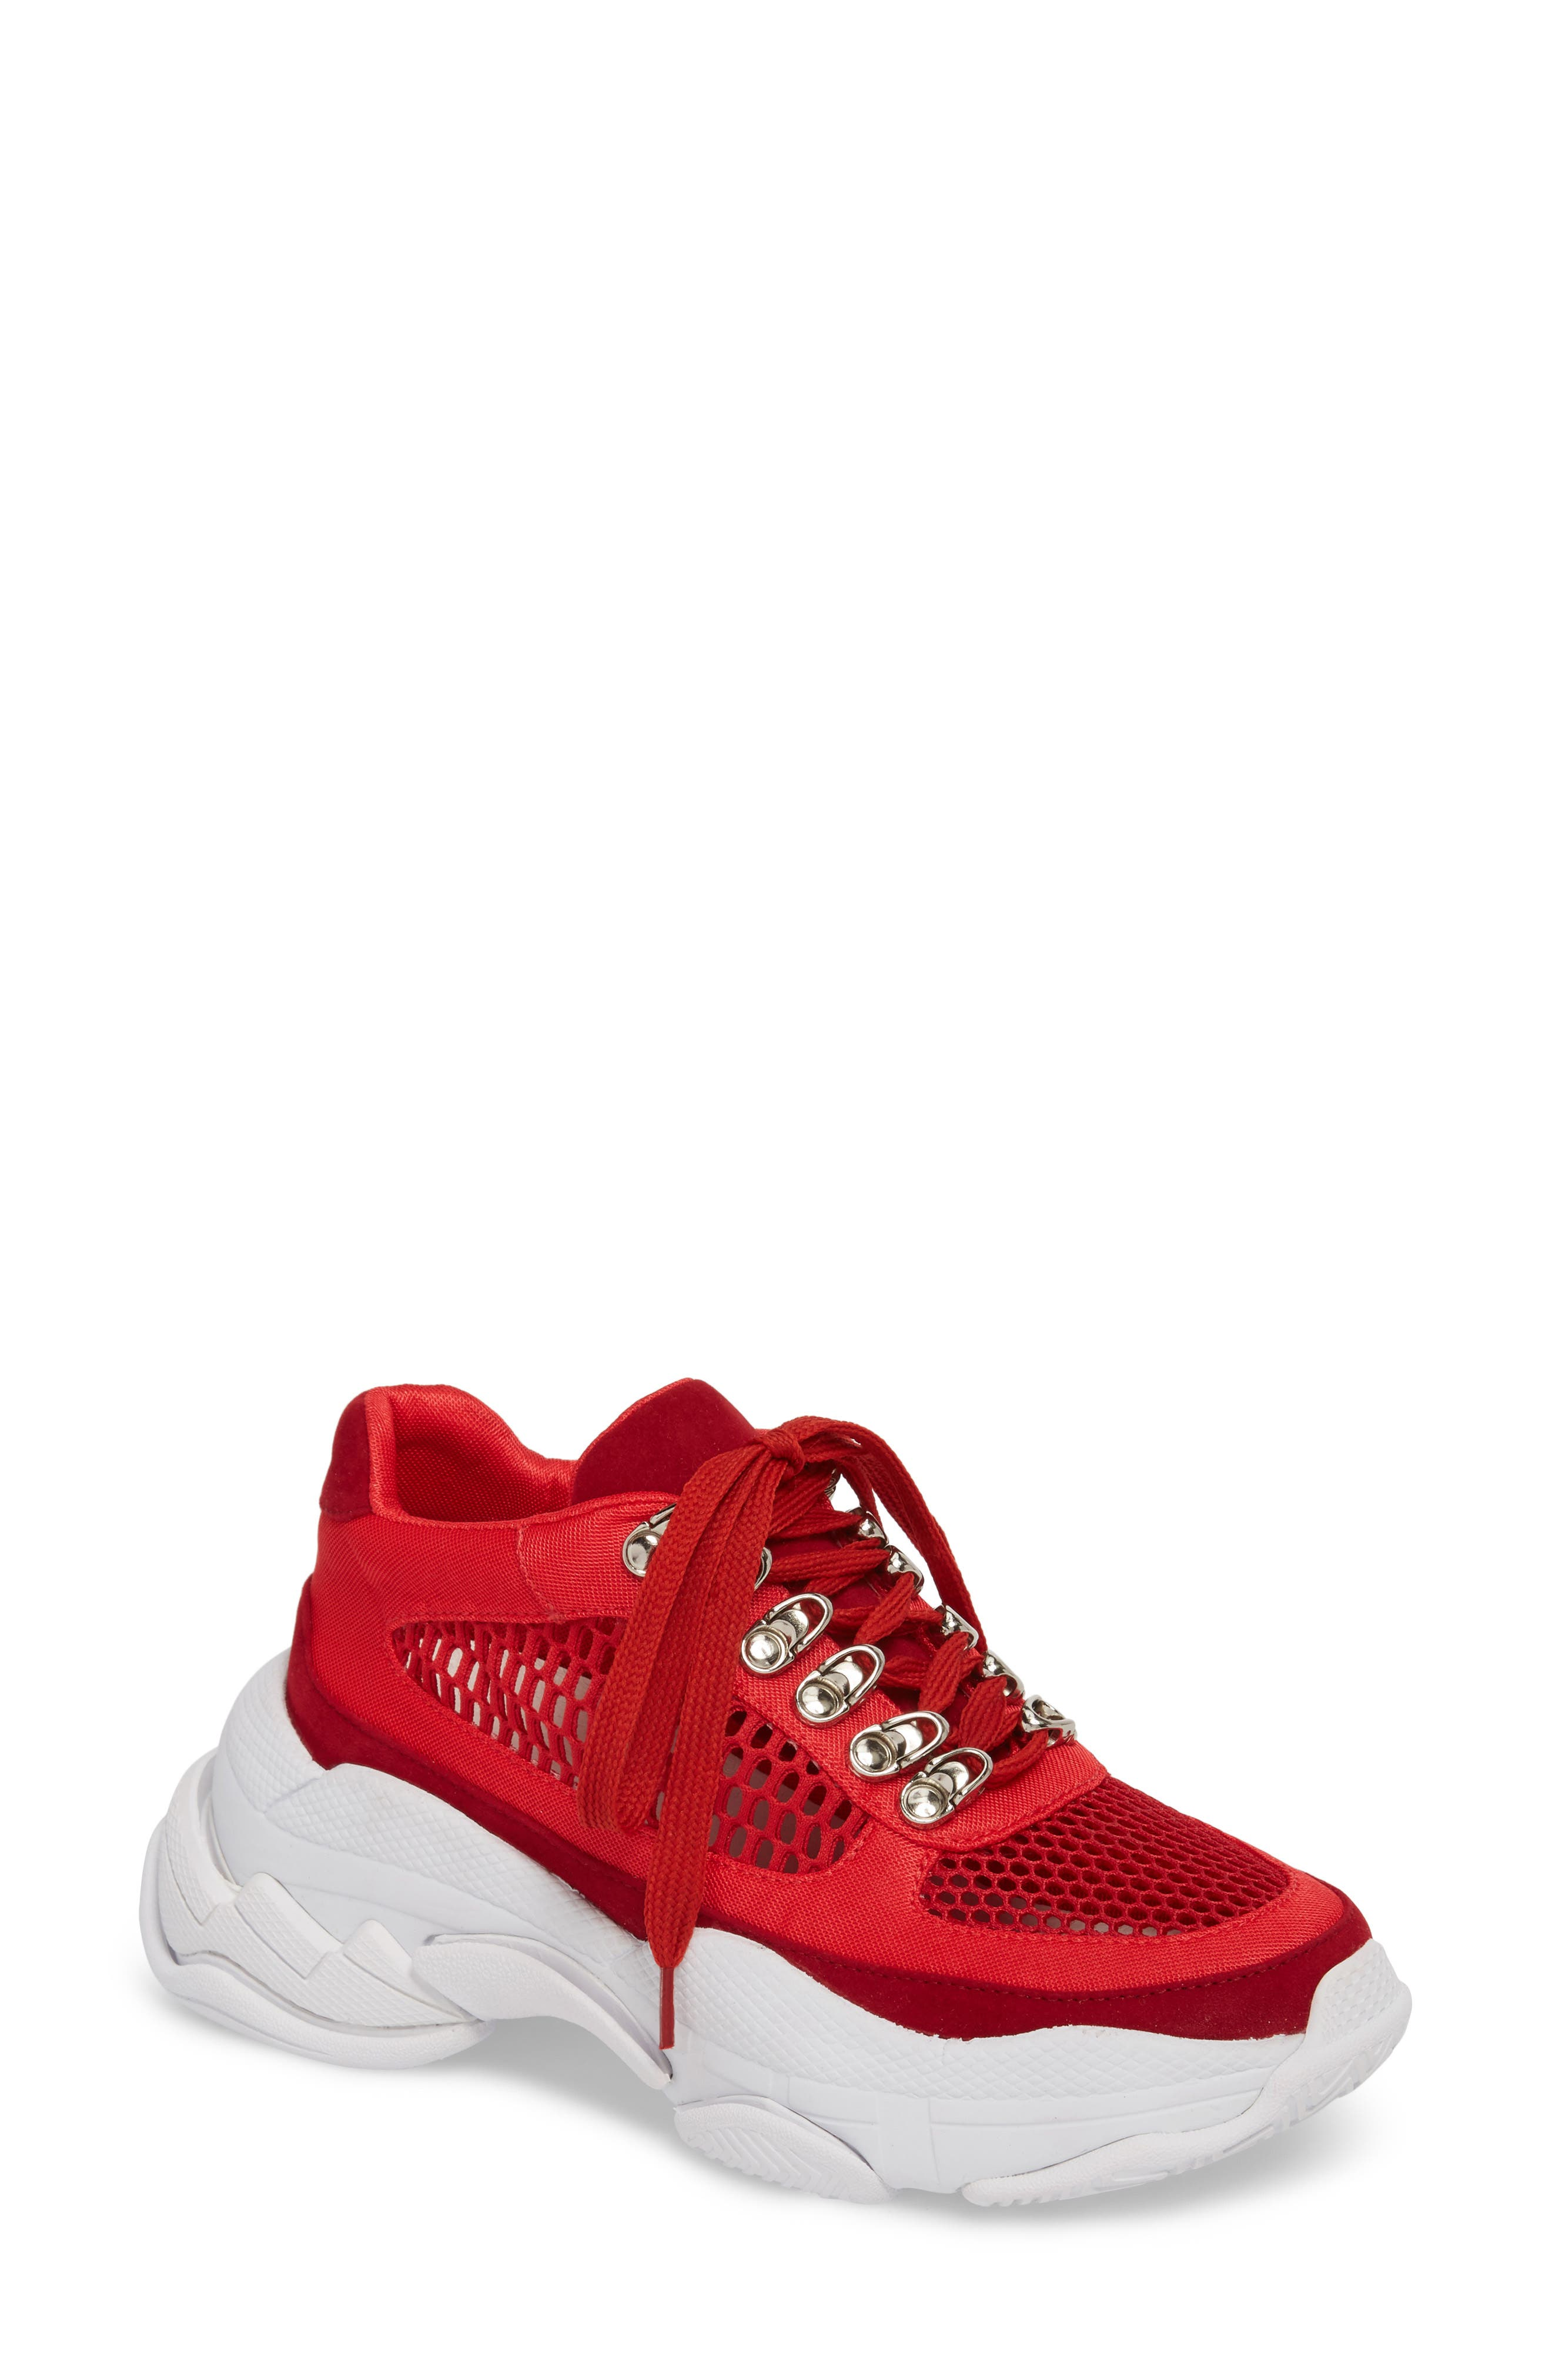 Hotspot Lace-Up Sneaker,                             Main thumbnail 1, color,                             Red